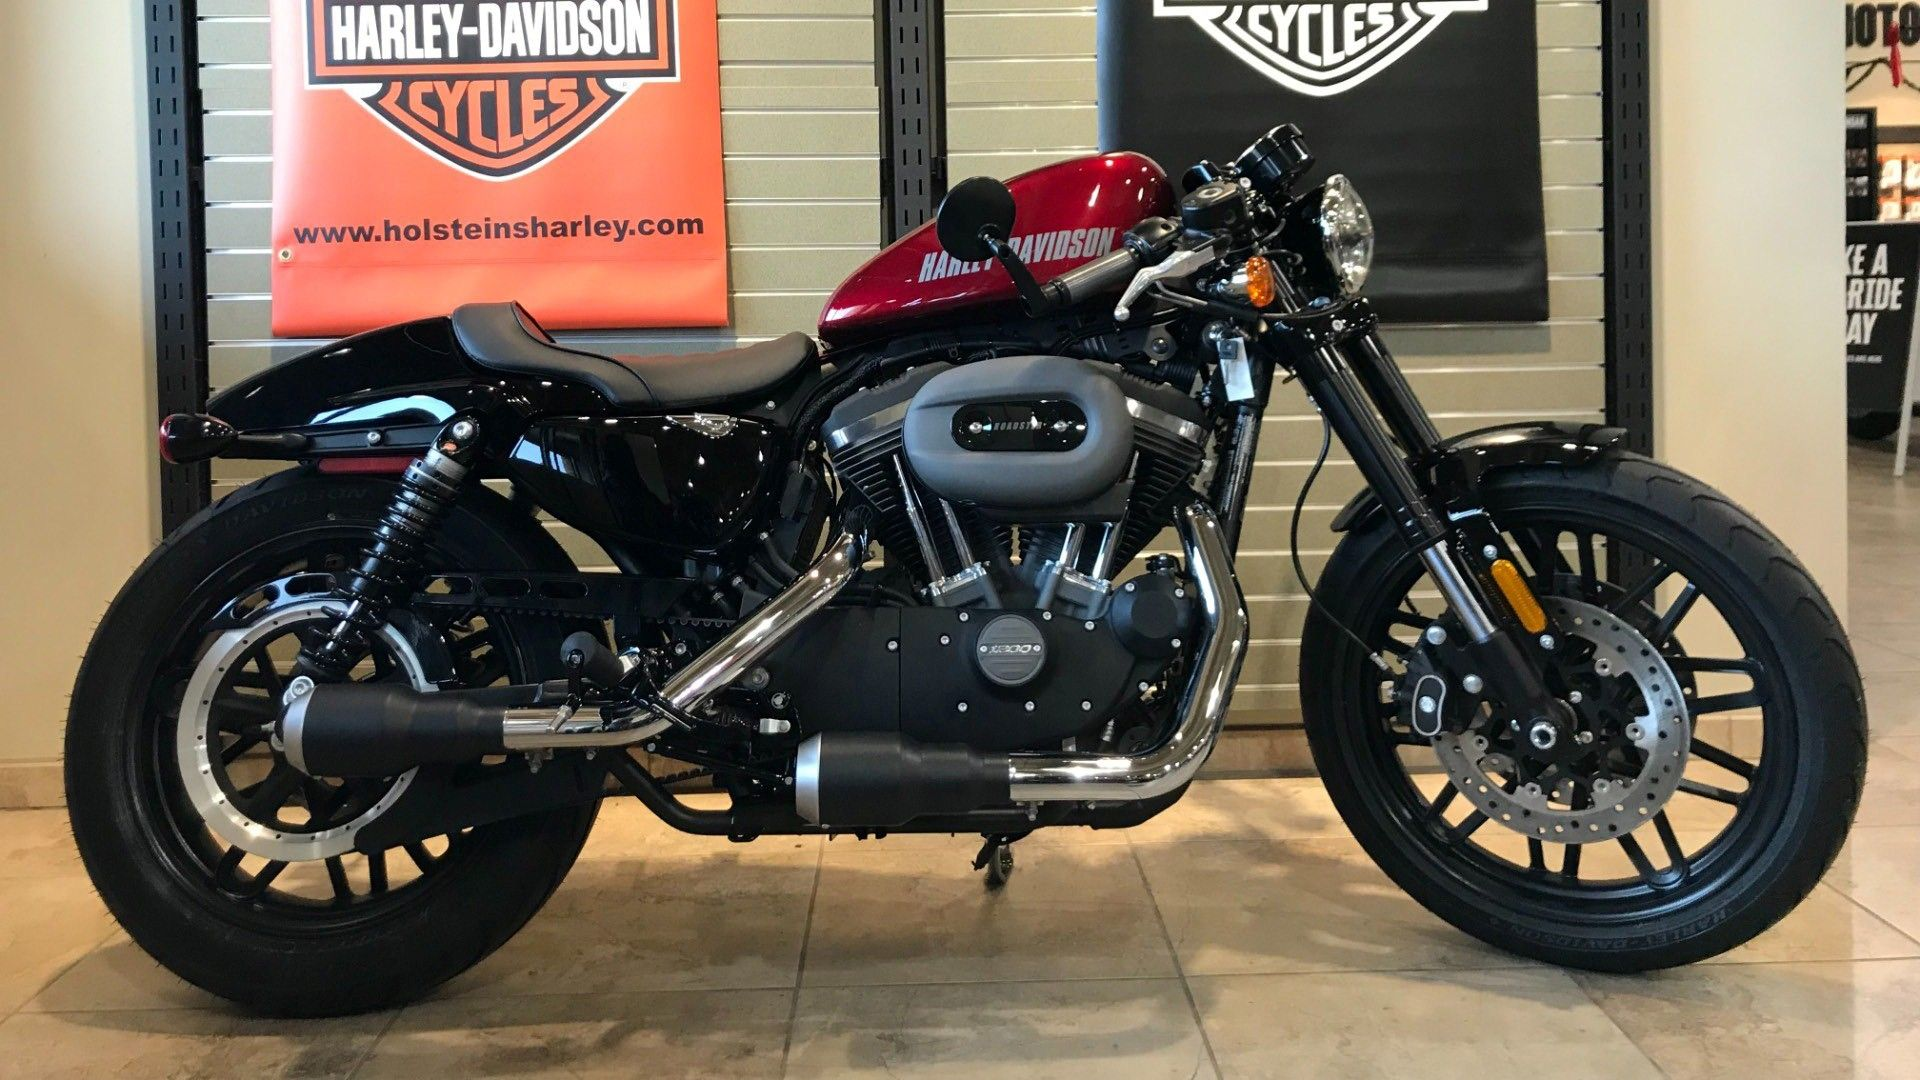 Pin By Kenny Shores On Harley Davidson Motorcycles In 2020 Harley Davidson Roadster Red Bike Harley Davidson